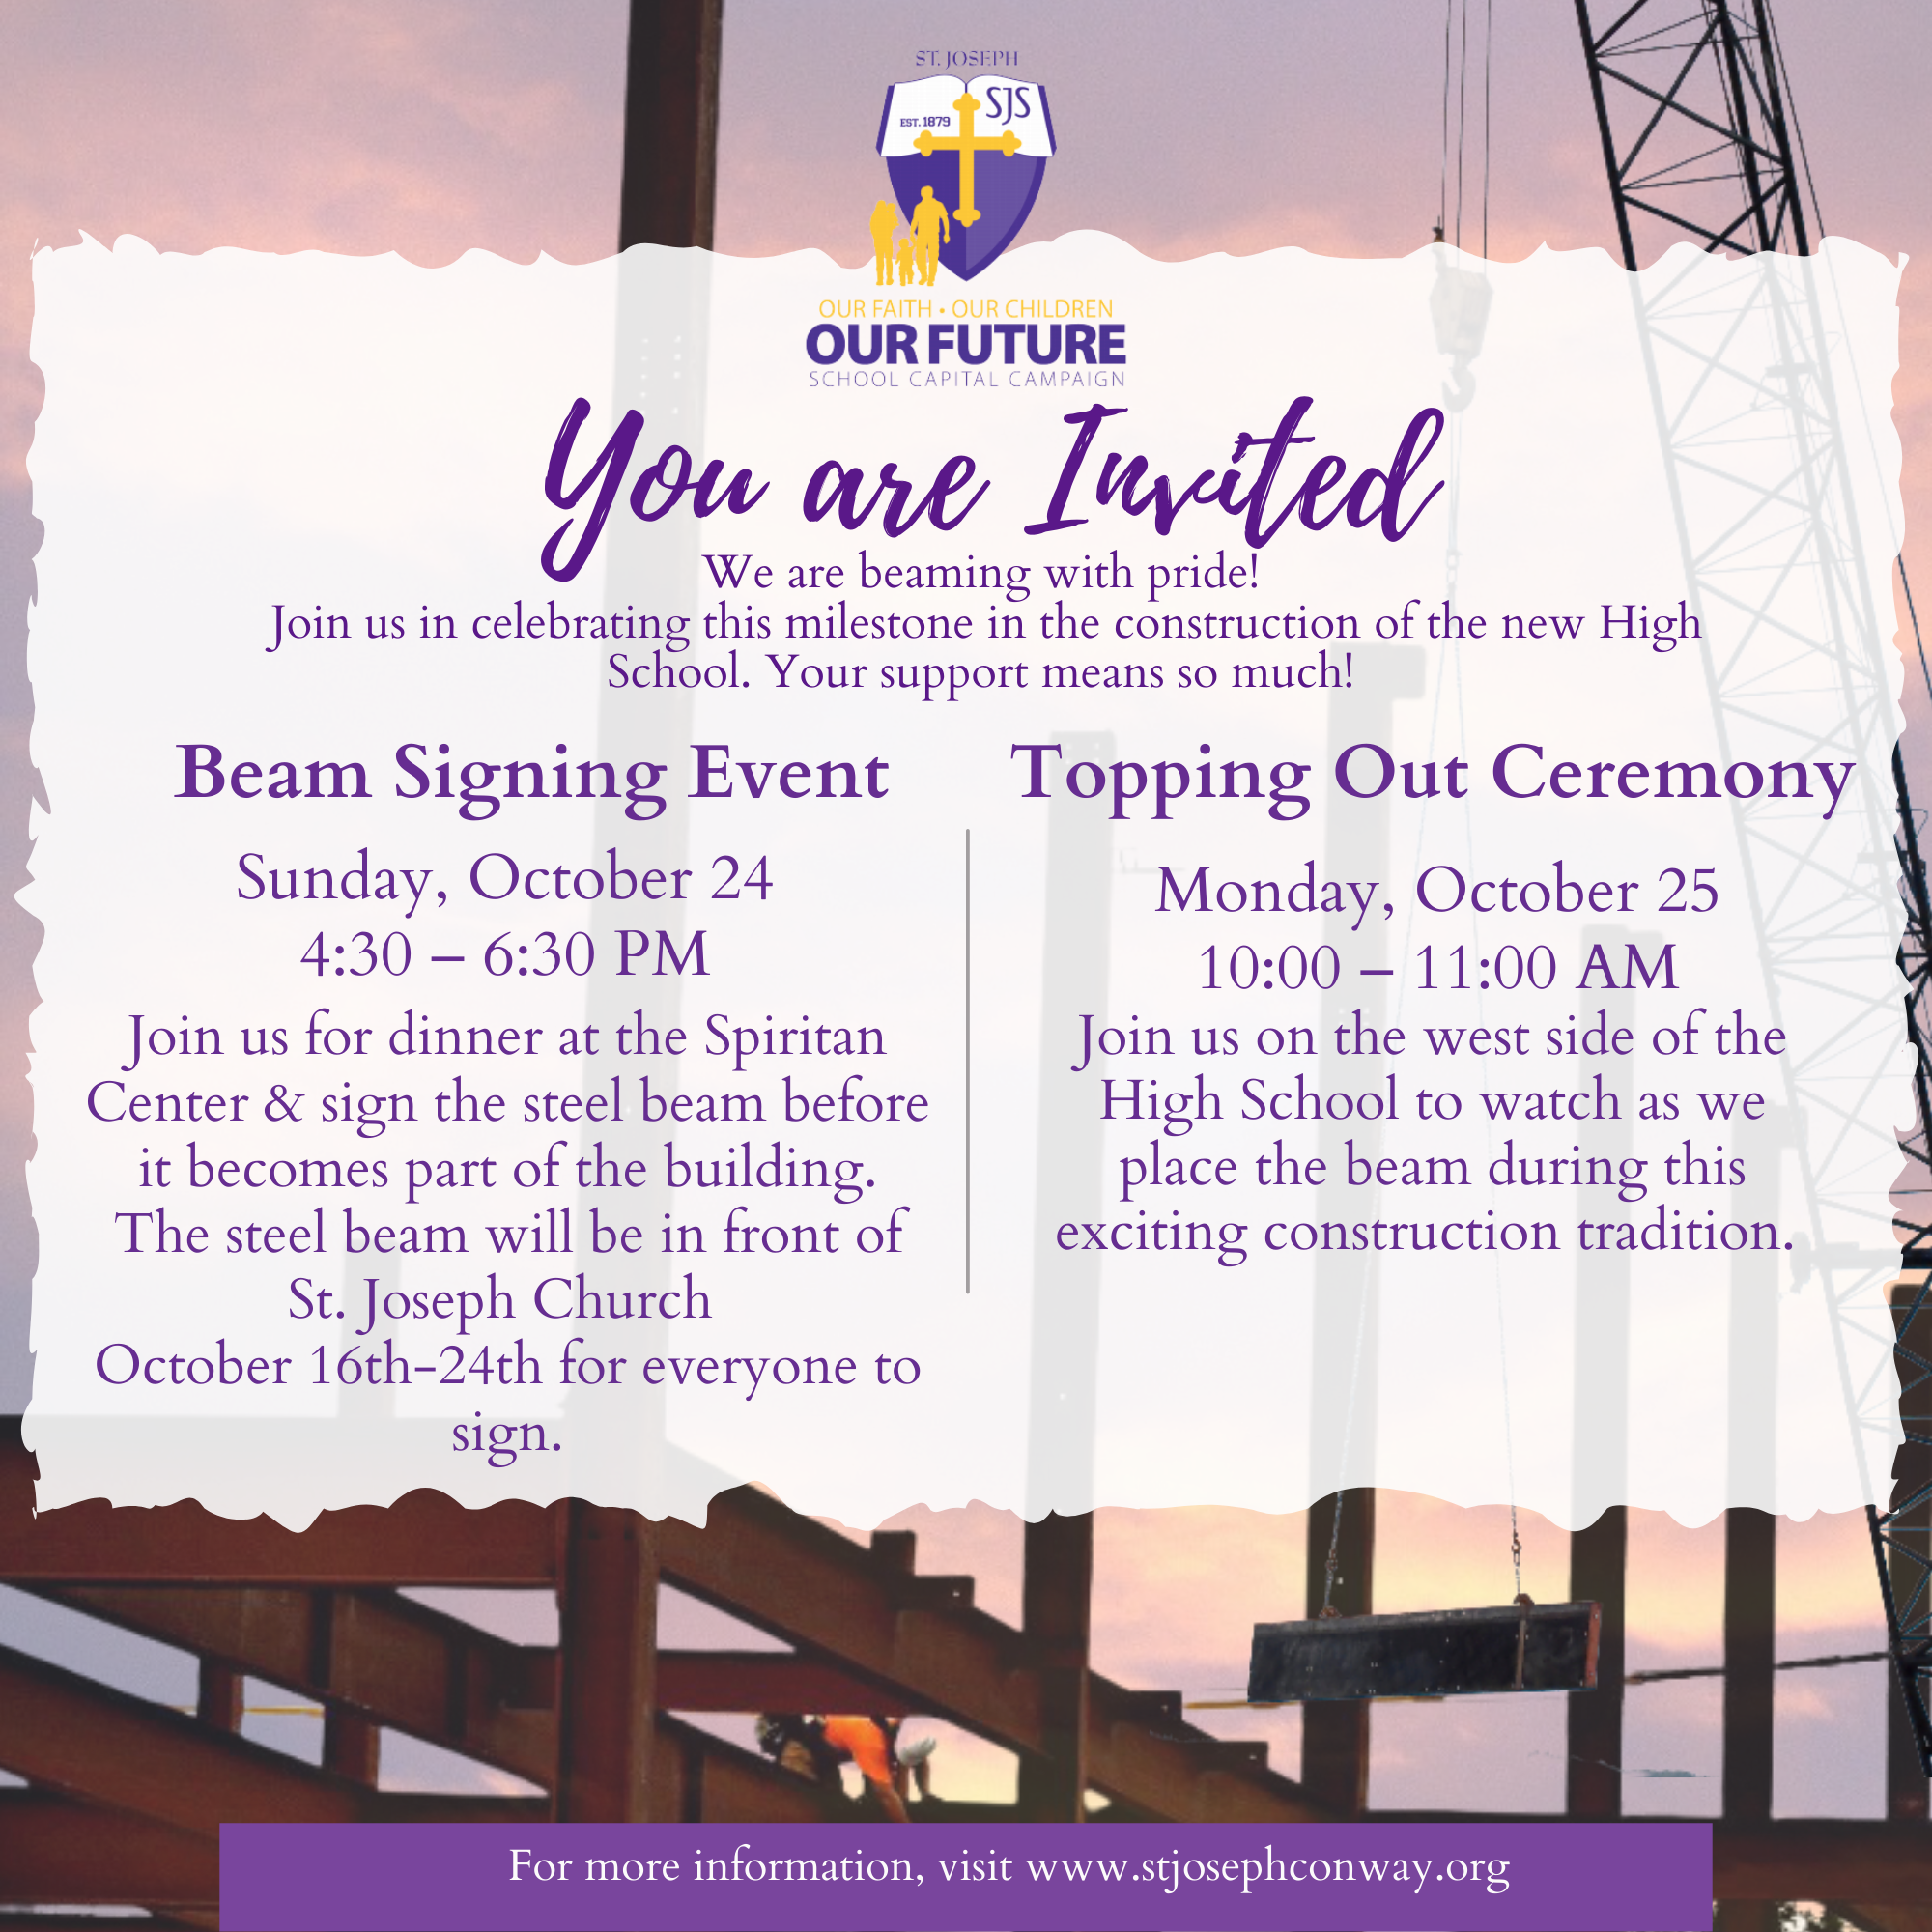 Beam Signing & Topping Out